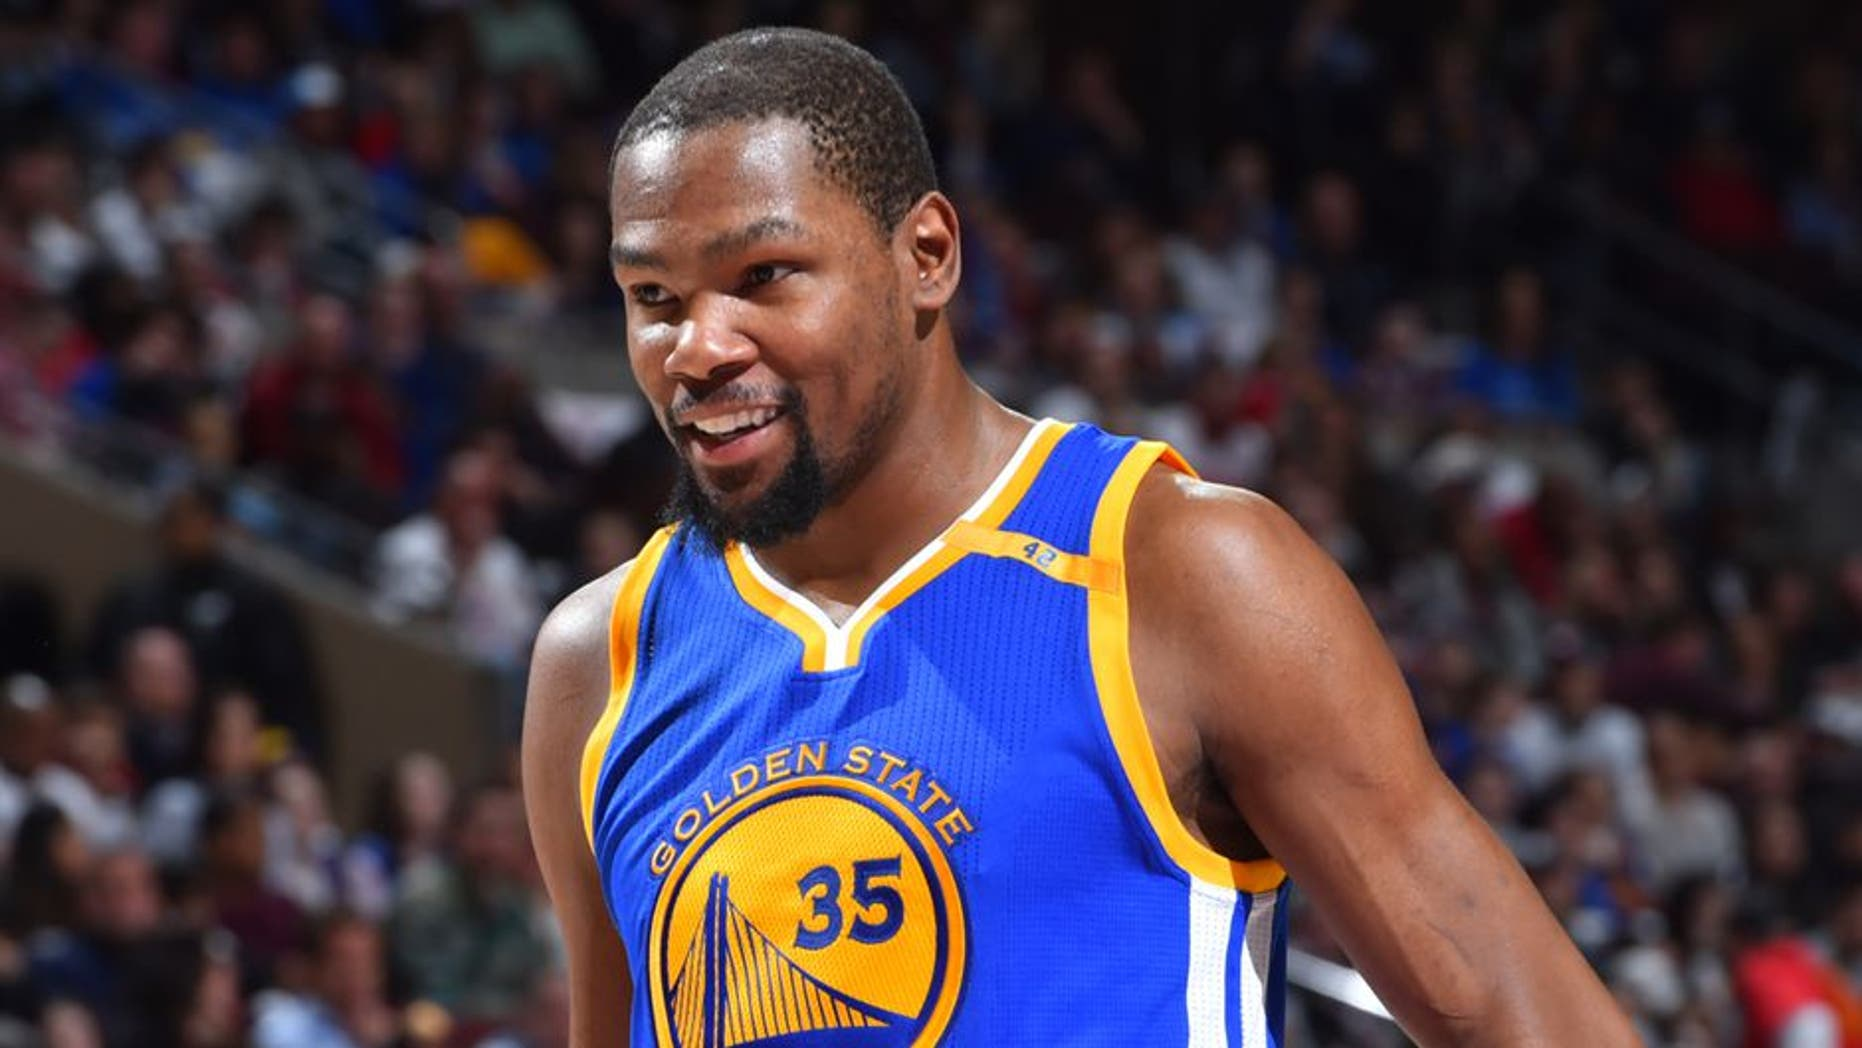 PHILADELPHIA, PA - FEBRUARY 27: Kevin Durant #35 of the Golden State Warriors looks on against the Philadelphia 76ers at Wells Fargo Center on February 27, 2017 in Philadelphia, Pennsylvania NOTE TO USER: User expressly acknowledges and agrees that, by downloading and/or using this Photograph, user is consenting to the terms and conditions of the Getty Images License Agreement. Mandatory Copyright Notice: Copyright 2017 NBAE (Photo by Jesse D. Garrabrant/NBAE via Getty Images)